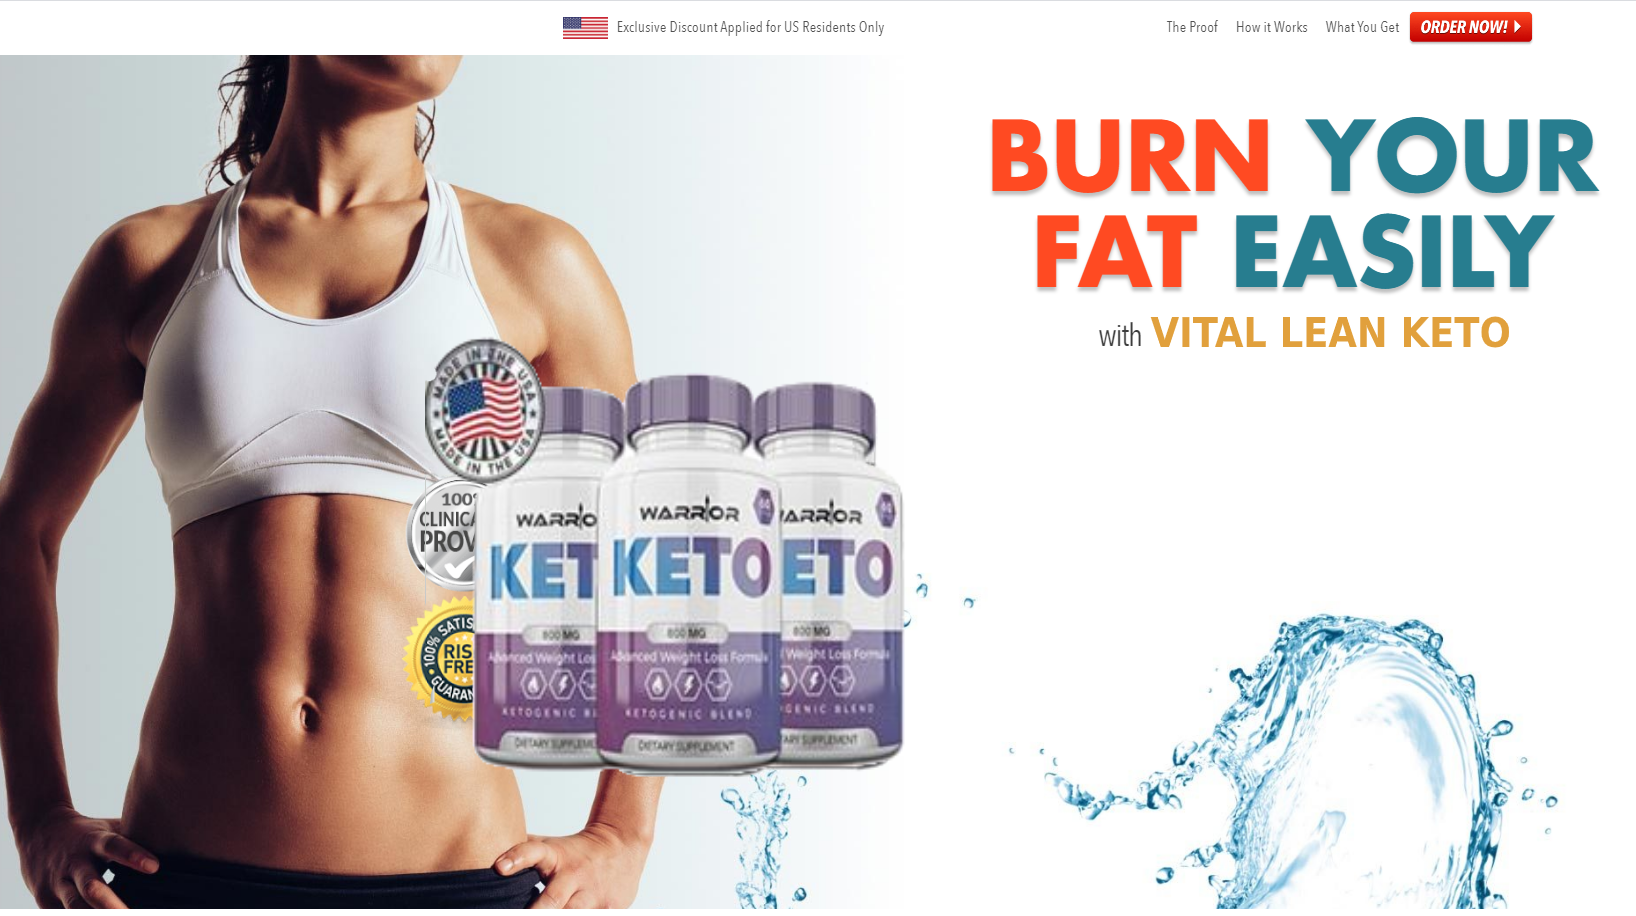 Warrior Keto Reviews - Is It Safe To Use and Does It Have Side Effects?